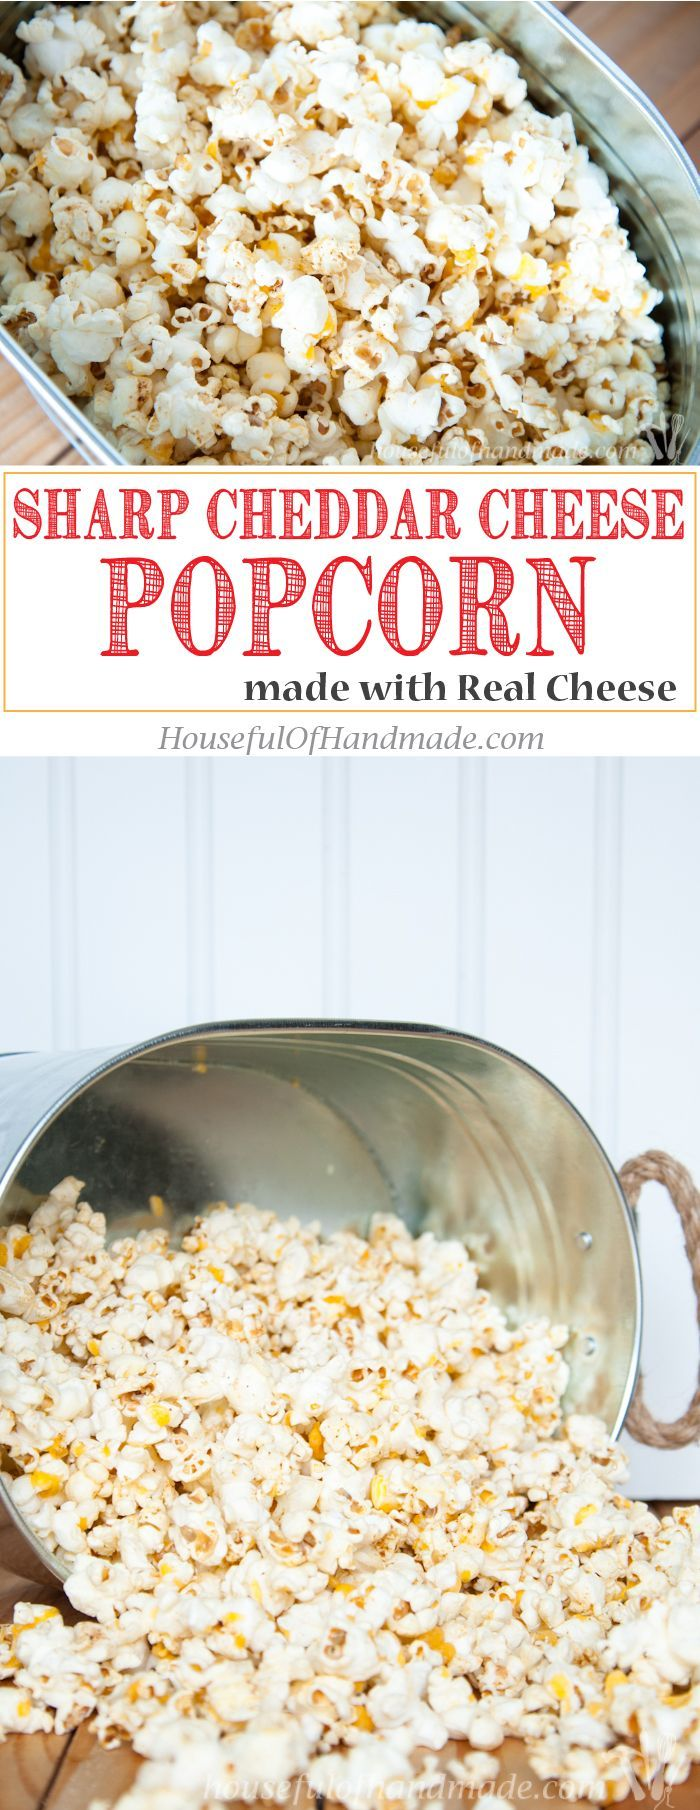 Make the most flavorful cheese popcorn without fake powdered cheese! This Sharp Cheddar Cheese Popcorn made from real cheese is easy and cheesy.   http://HousefulOfHandmade.com